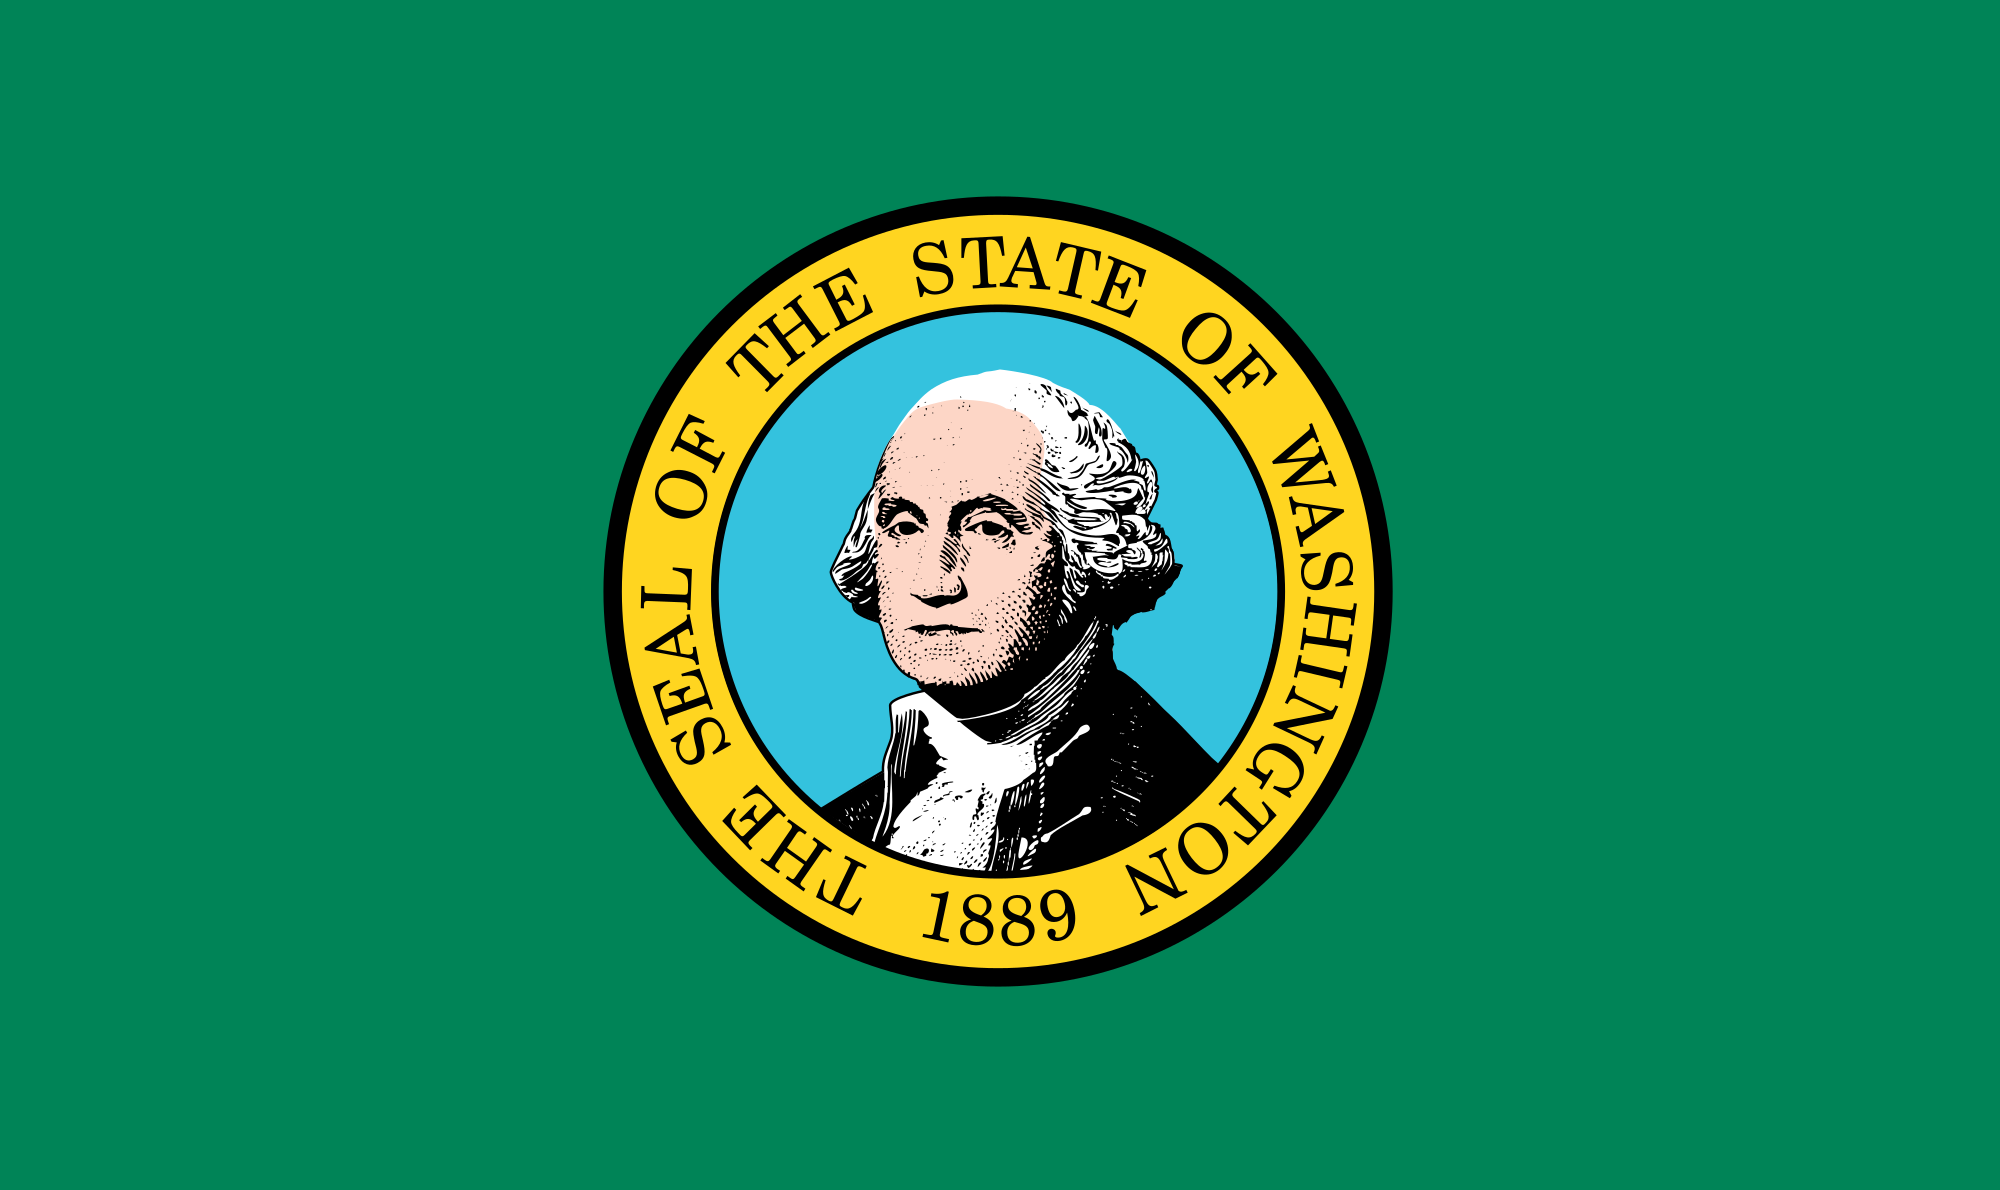 [Image: Washington_state_flag.png]